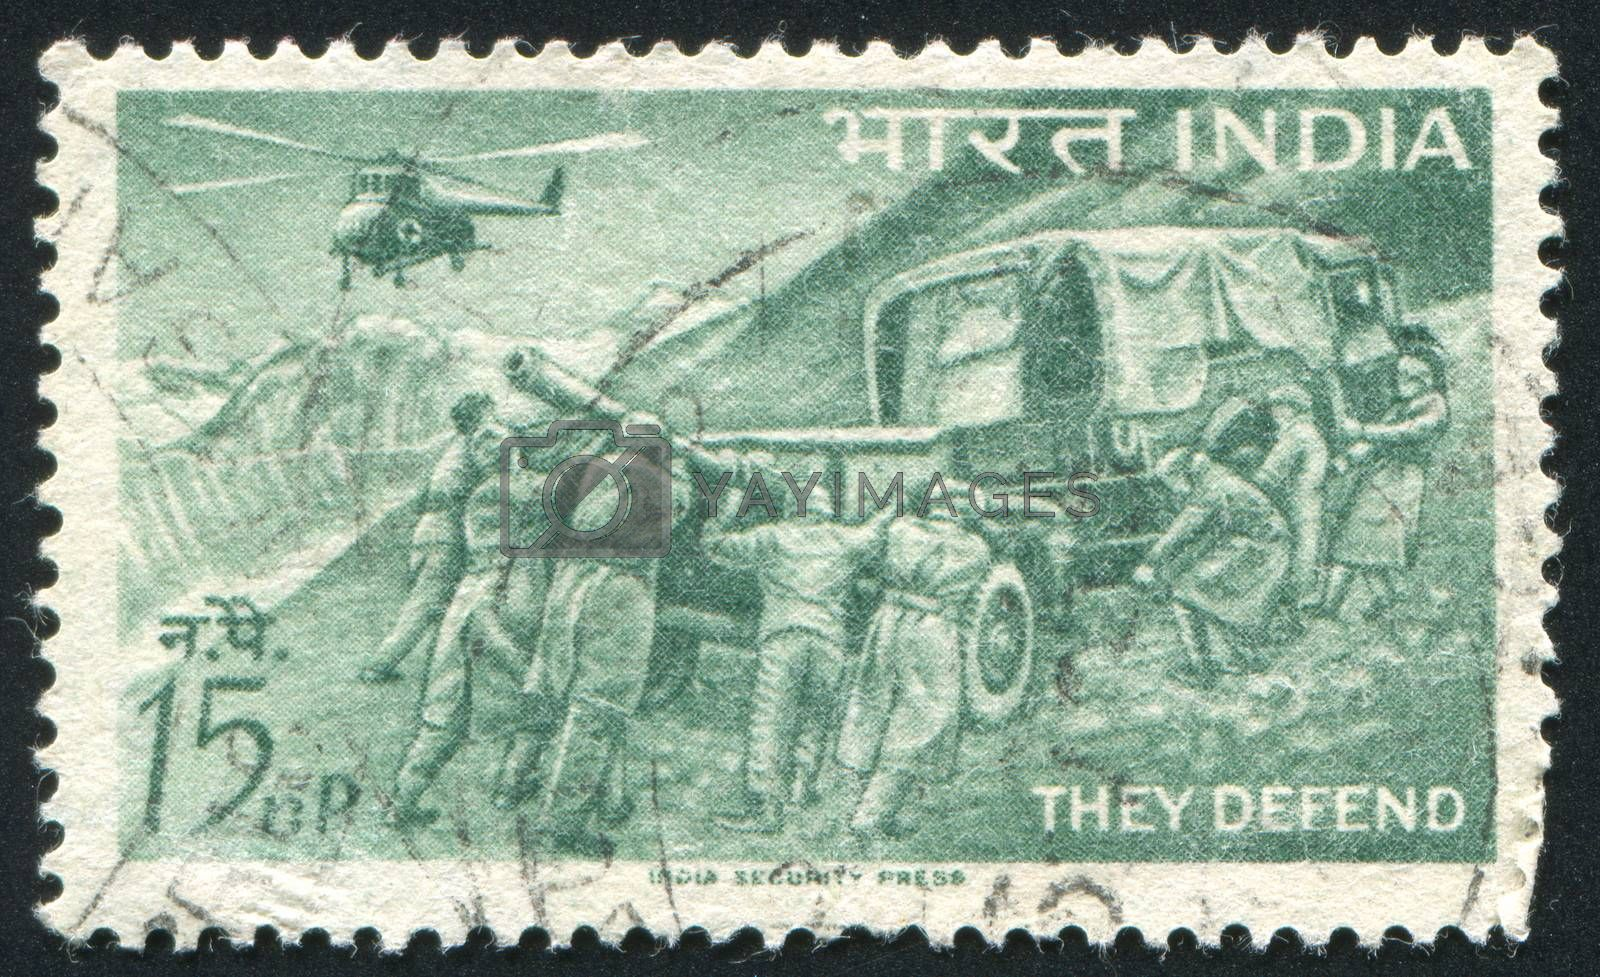 INDIA - CIRCA 1963: stamp printed by India, shows Field Artillery and Helicopter, circa 1963